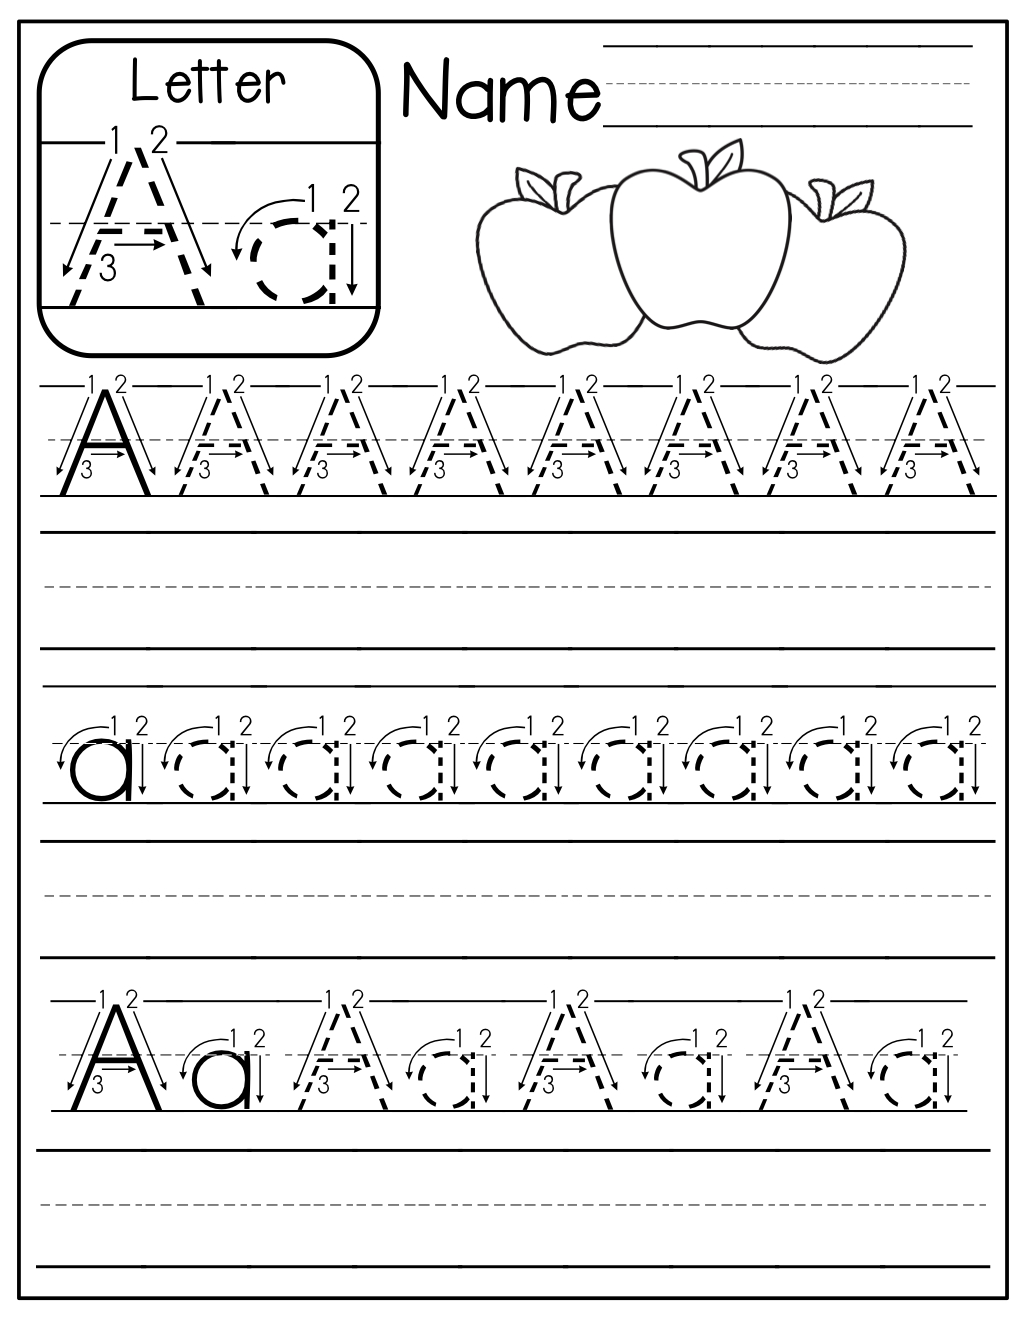 Freebie: A-Z Handwriting Practice Pages! | Kindergarten pertaining to A-Z Name Tracing